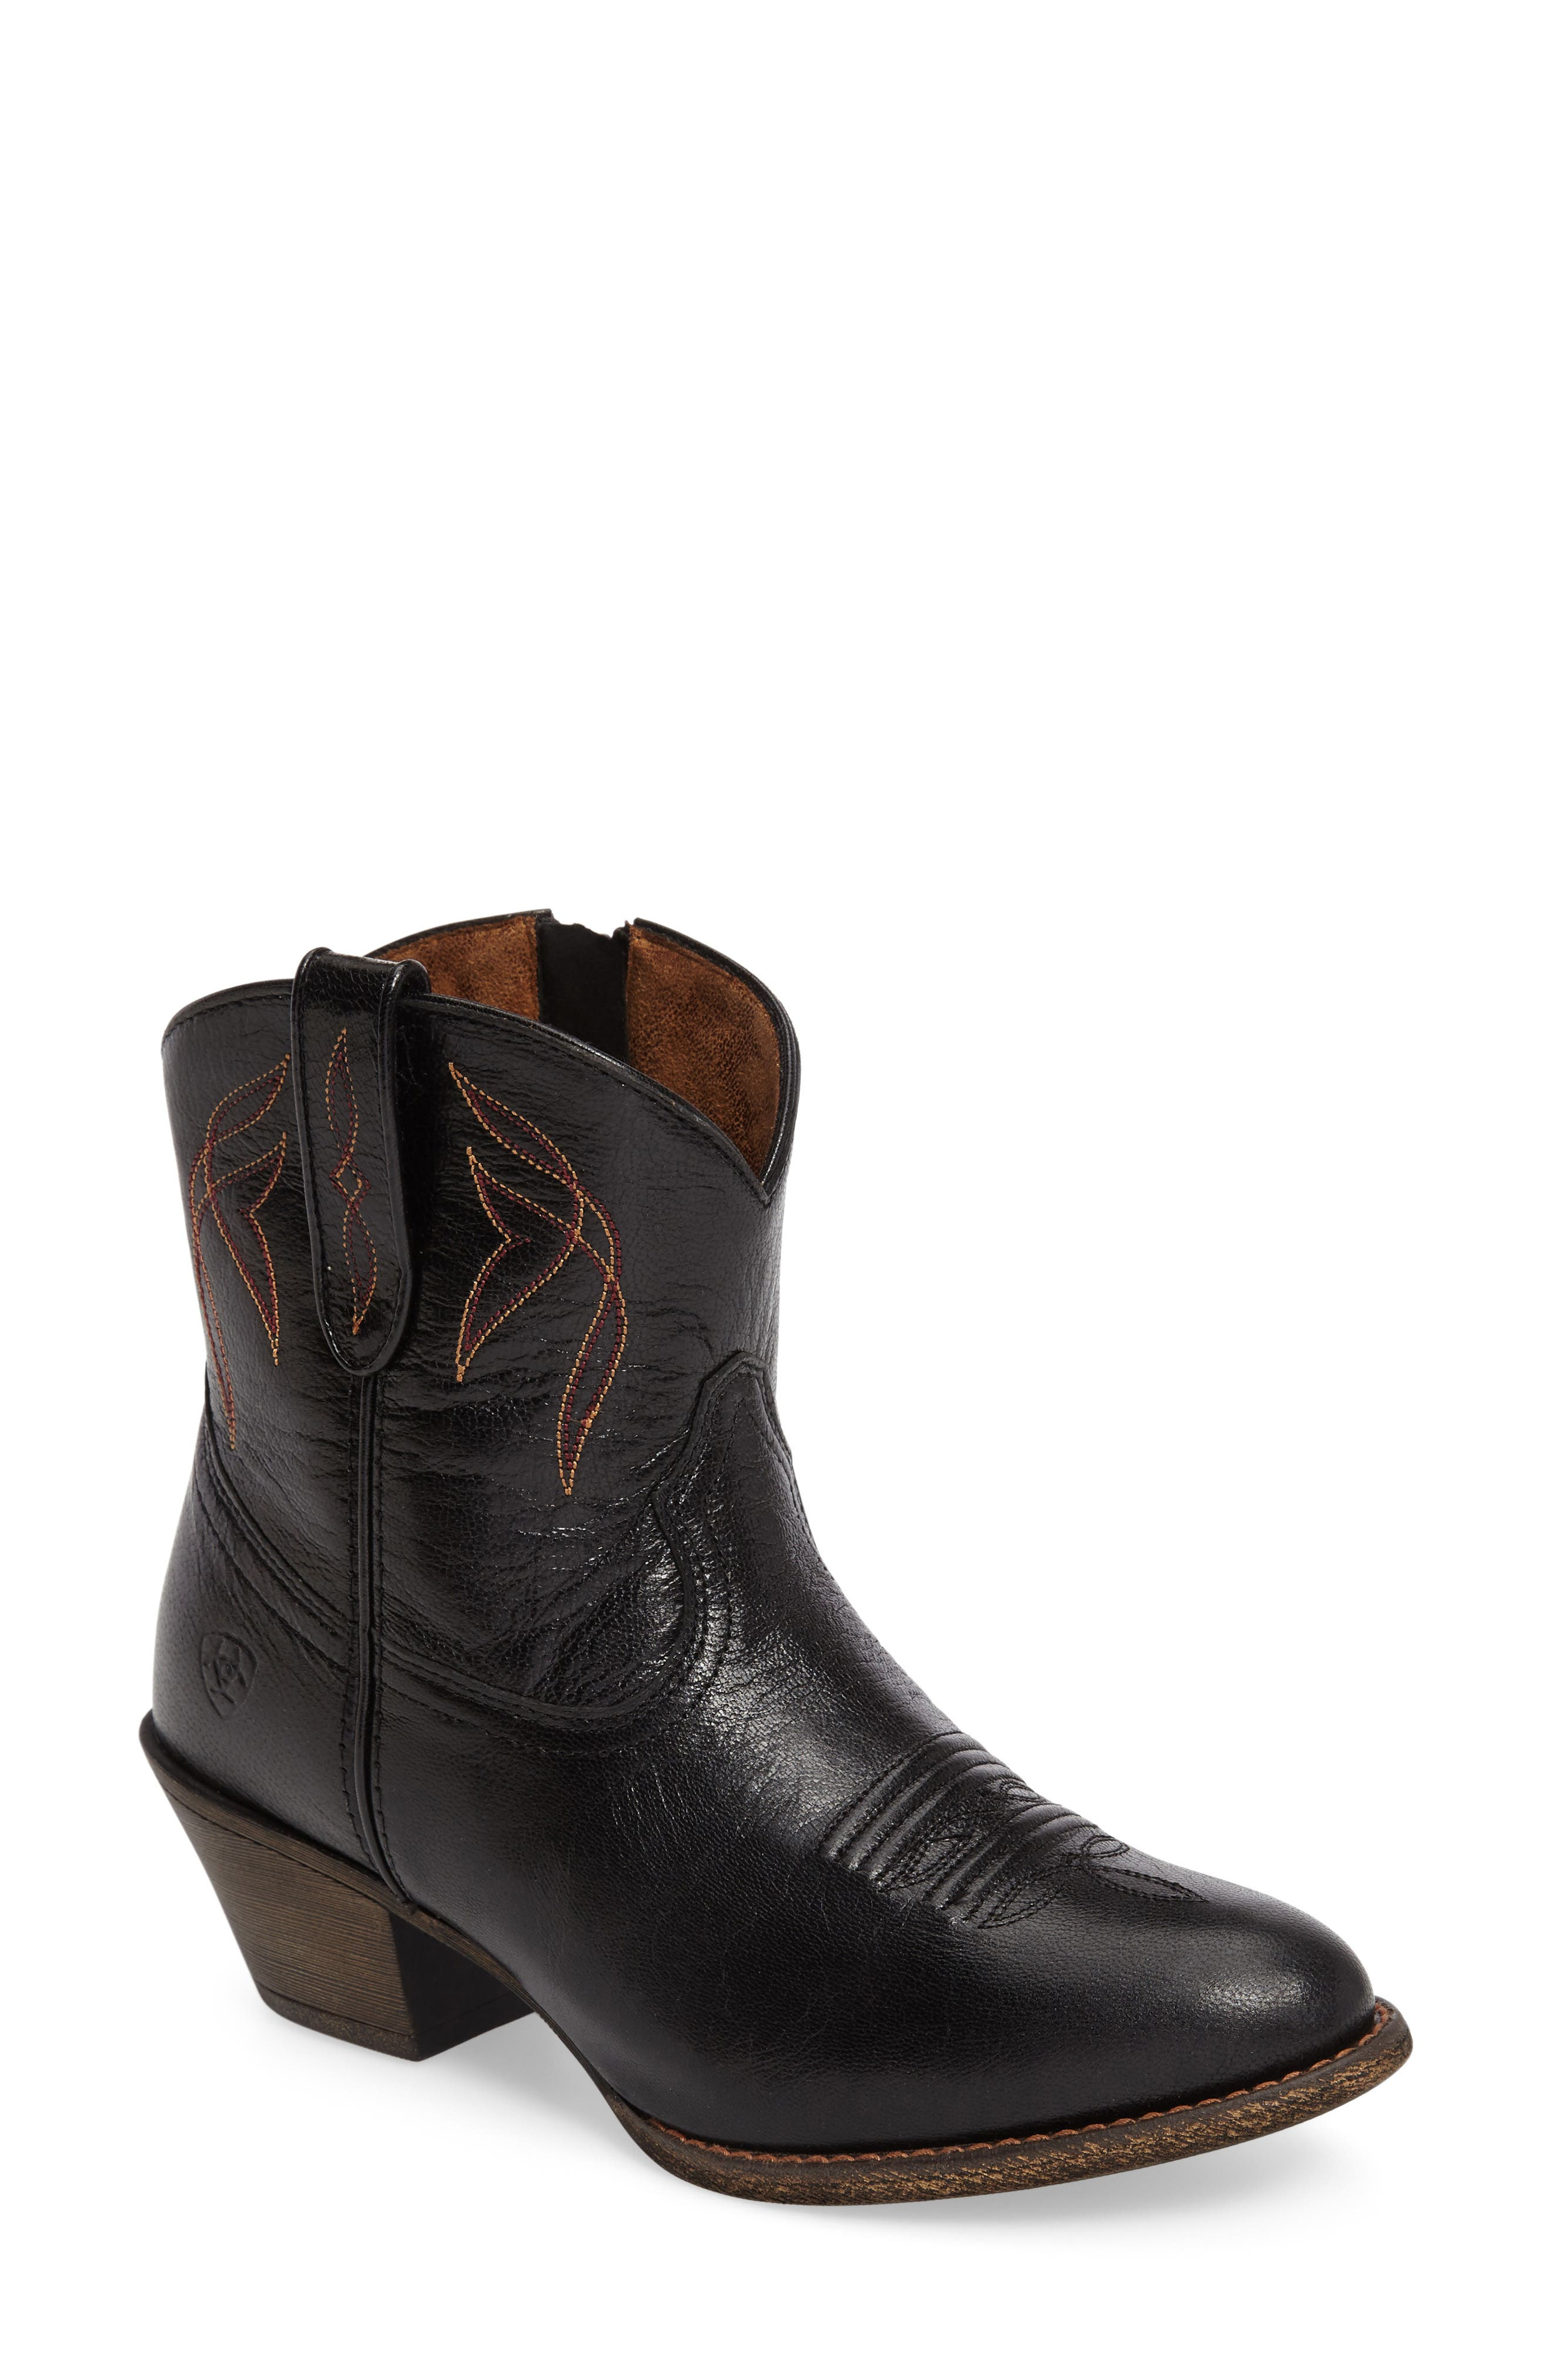 Darlin Short Western Boot,                             Main thumbnail 1, color,                             OLD BLACK LEATHER